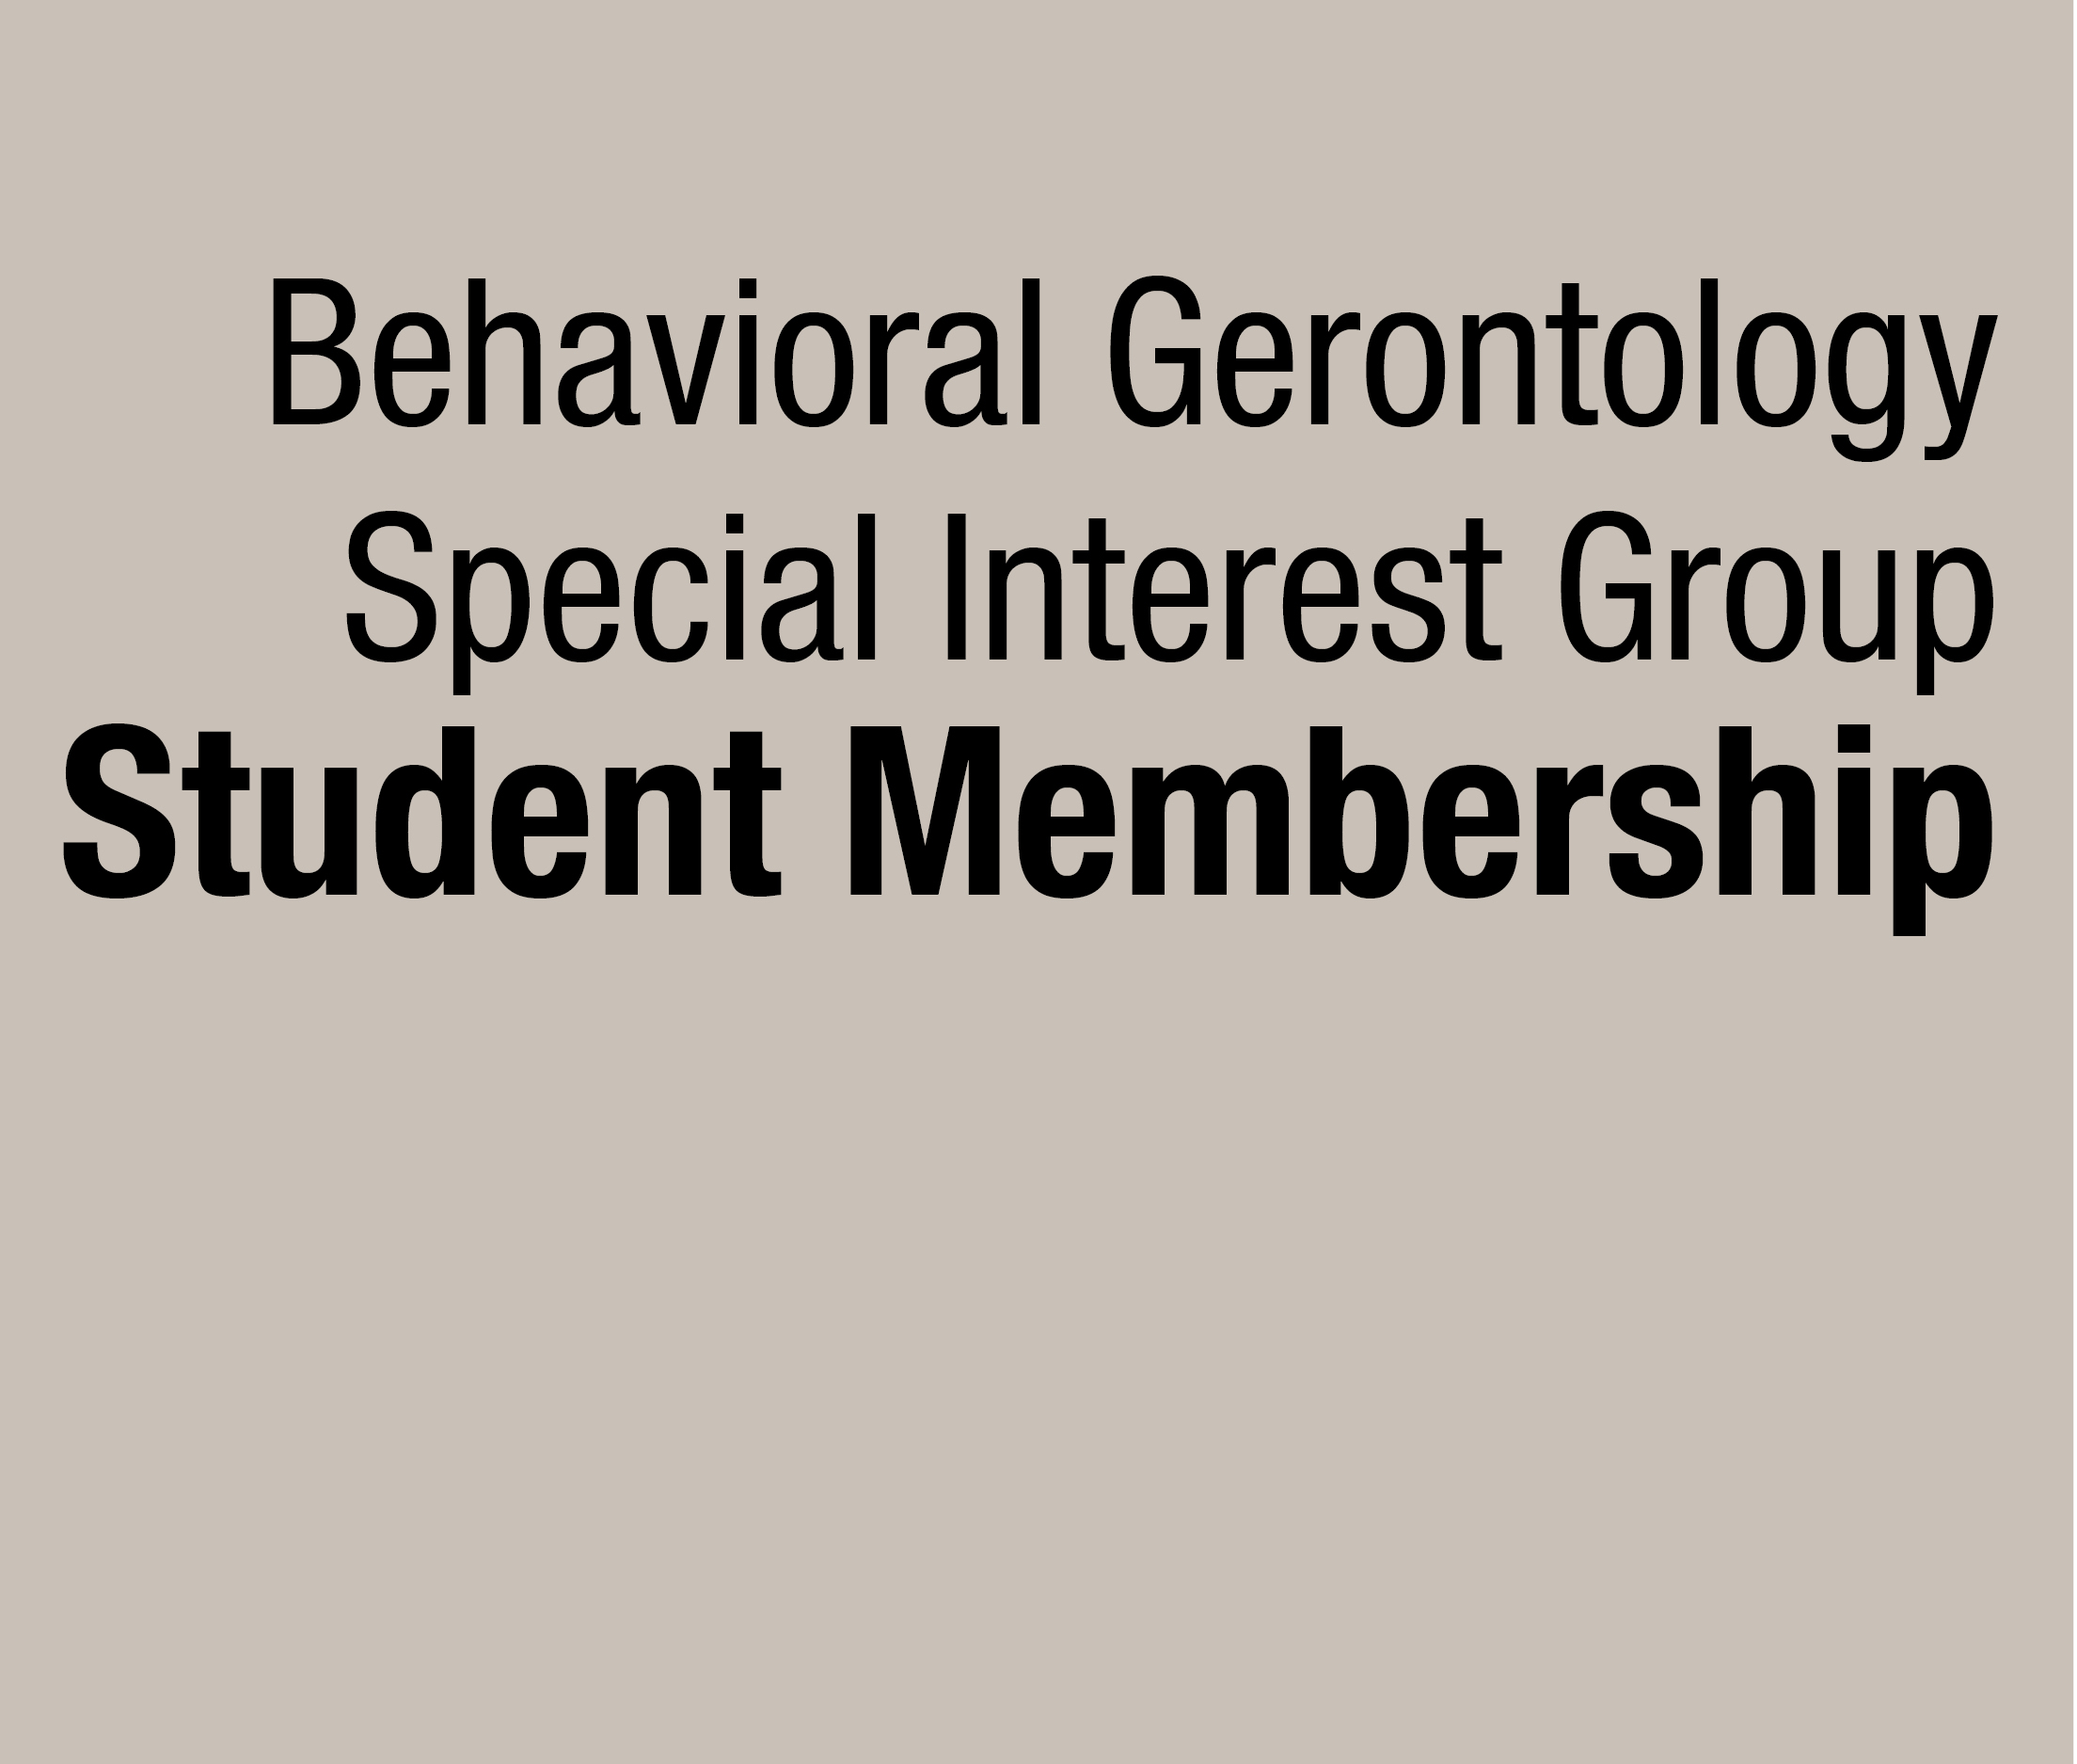 a square graphic representing Behavioral Gerontology SIG Student Membership (9/1/21-8/31/22)